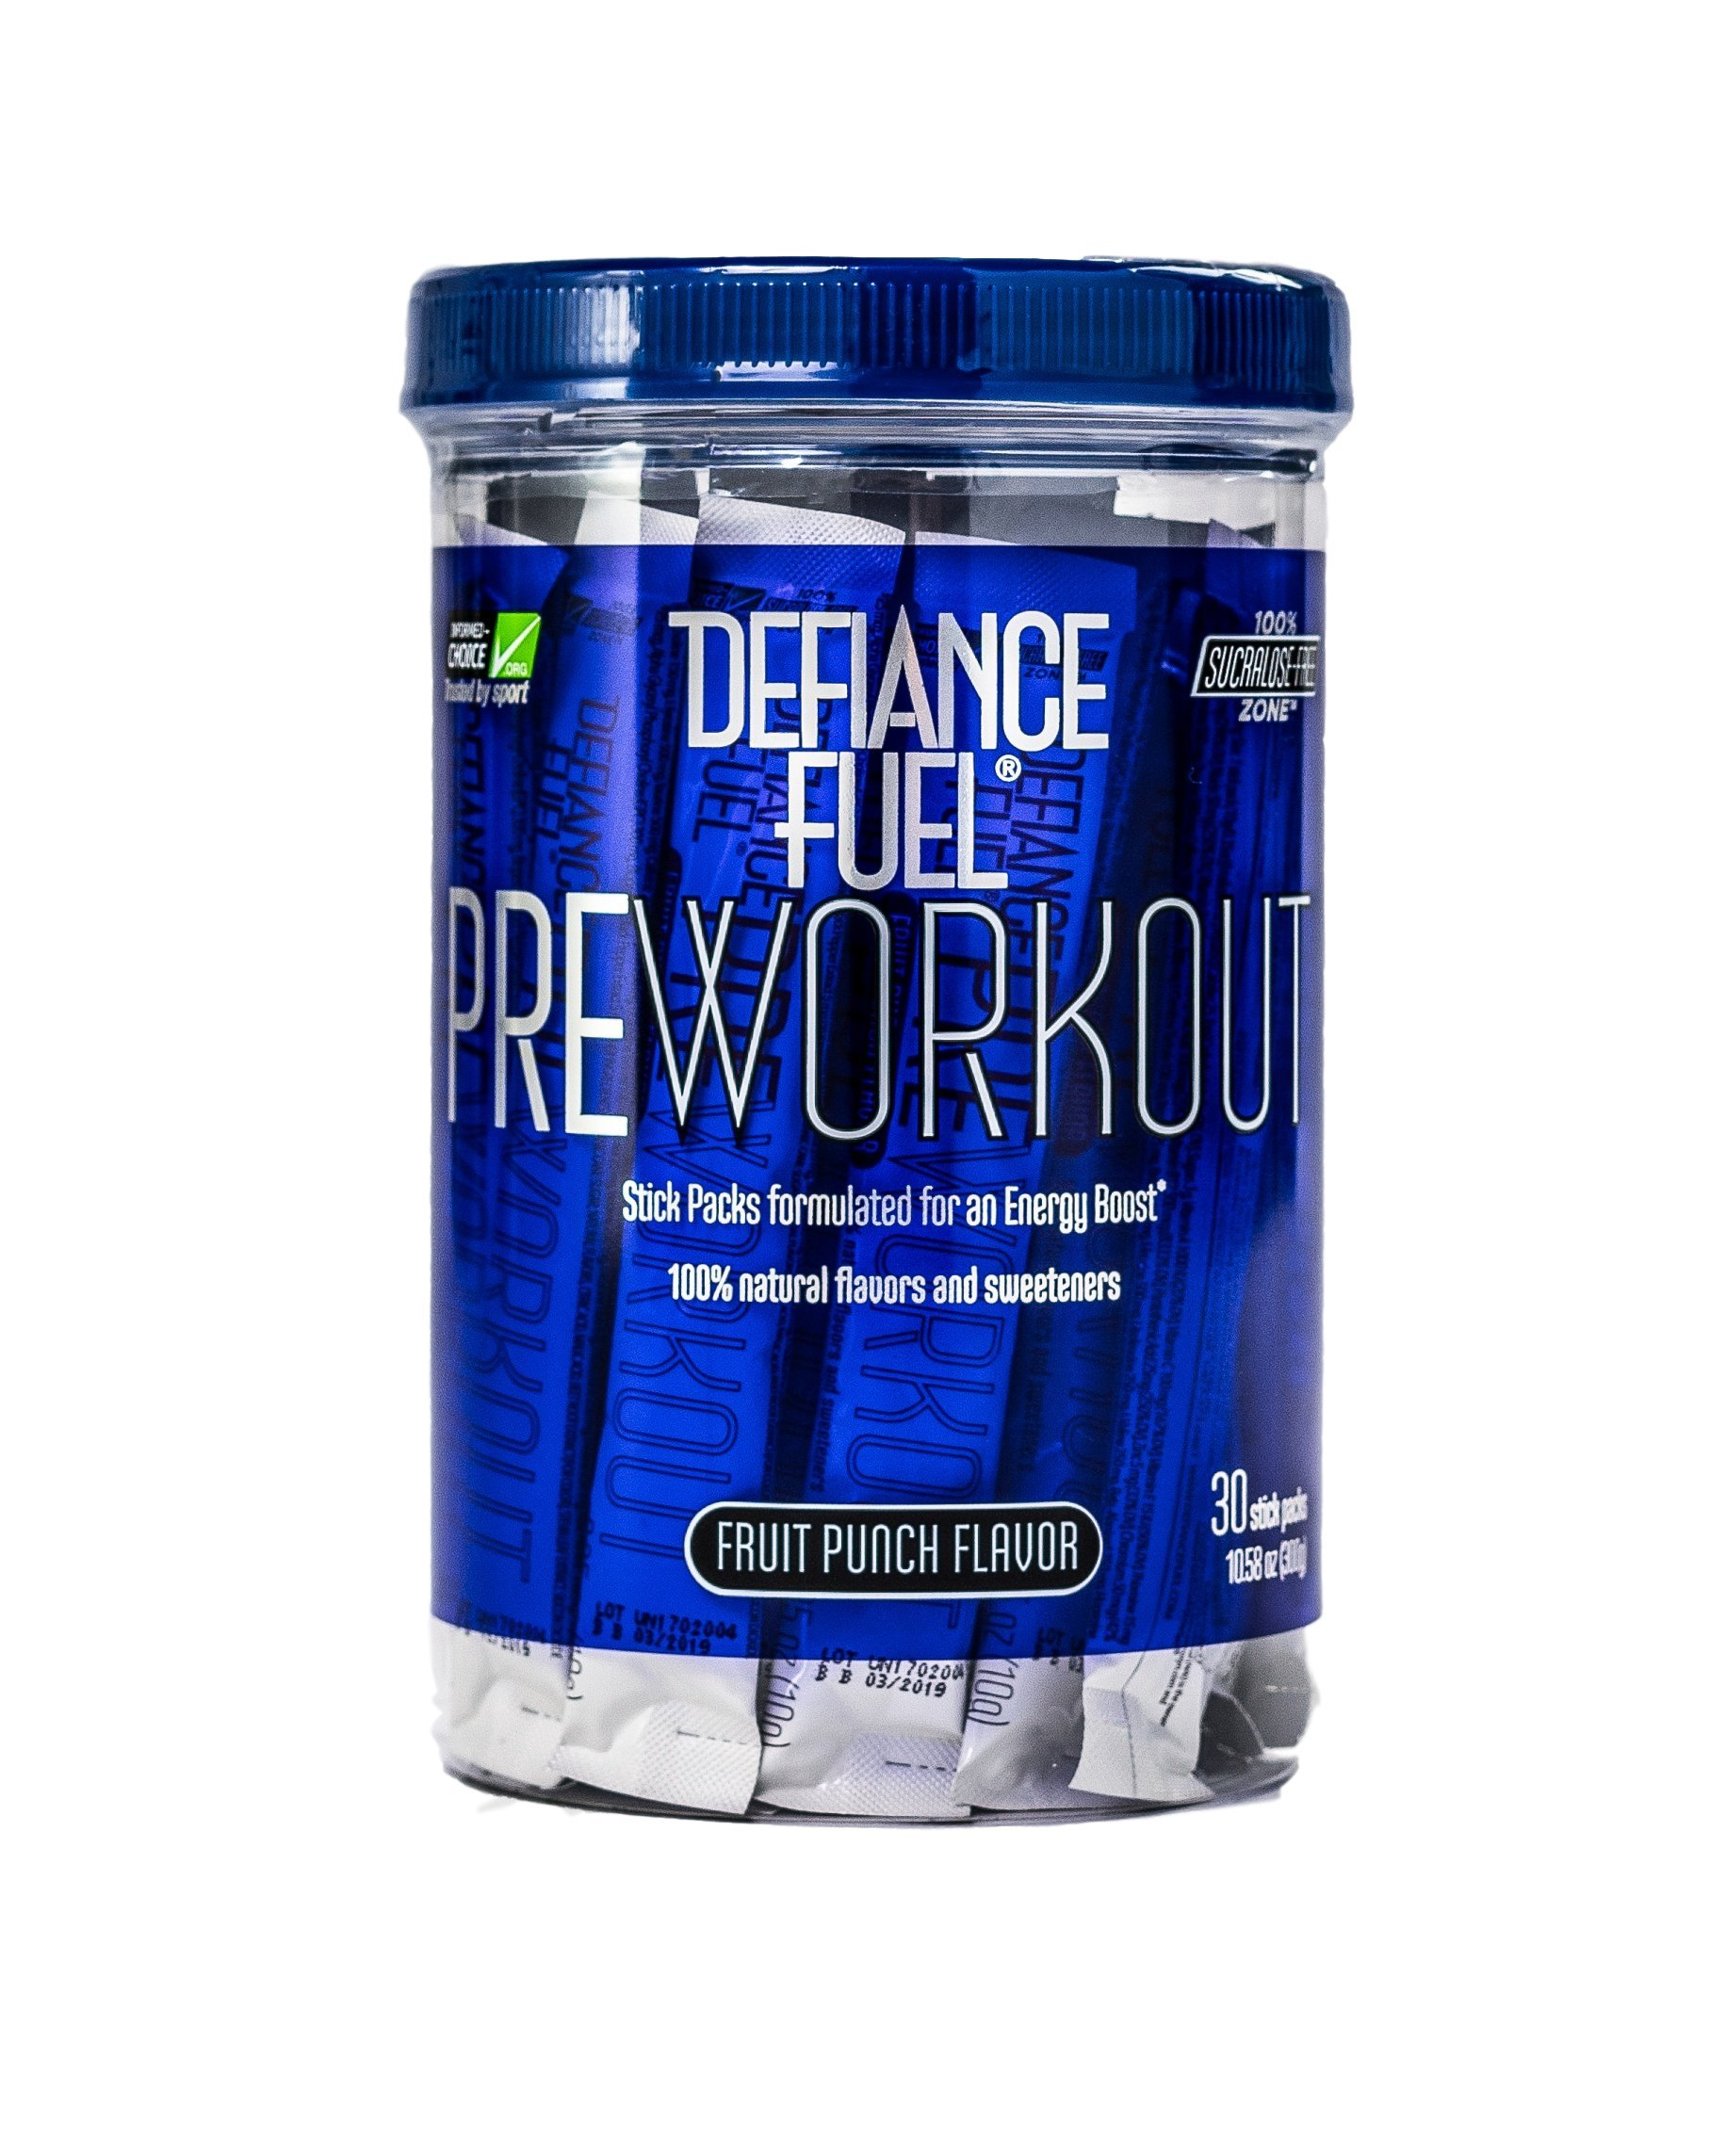 Defiance Fuel Pre Workout Powder Energy Drink w/ Beta Alanine, Taurine and Amino Acids by Defiance Fuel (Image #1)